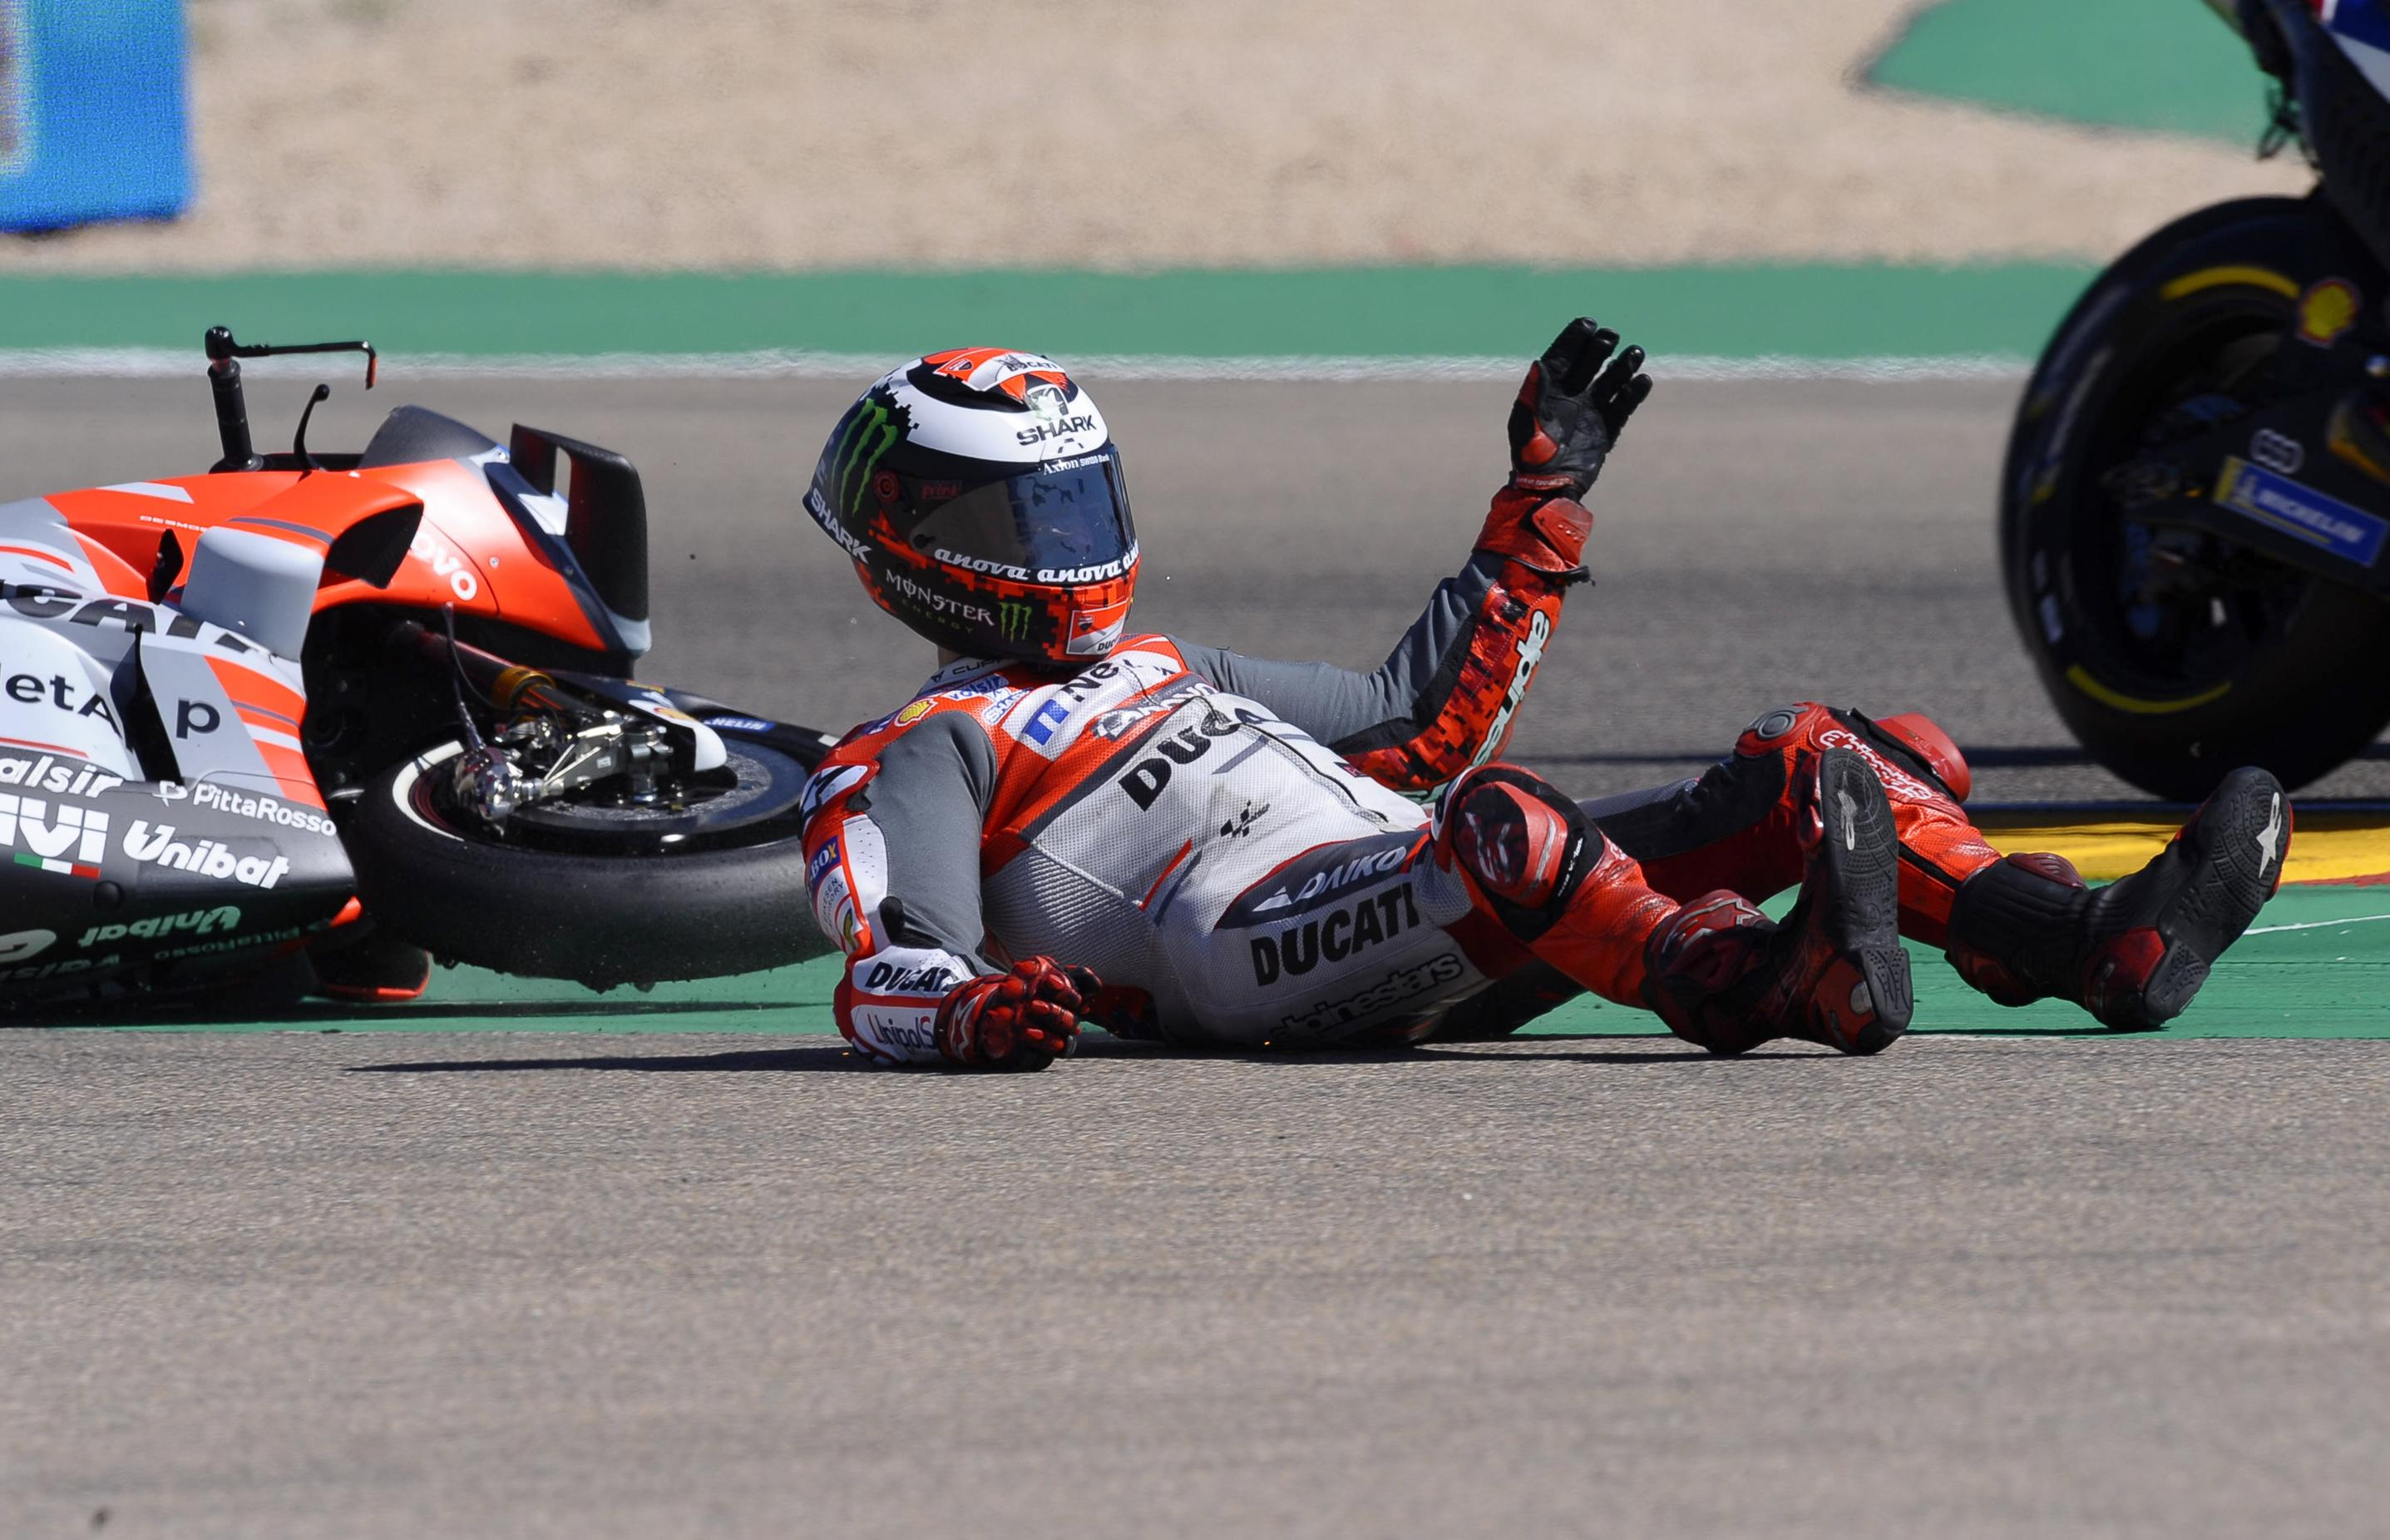 Jorge Lorenzo was catapulted off his bike during practice at the Thailand GP